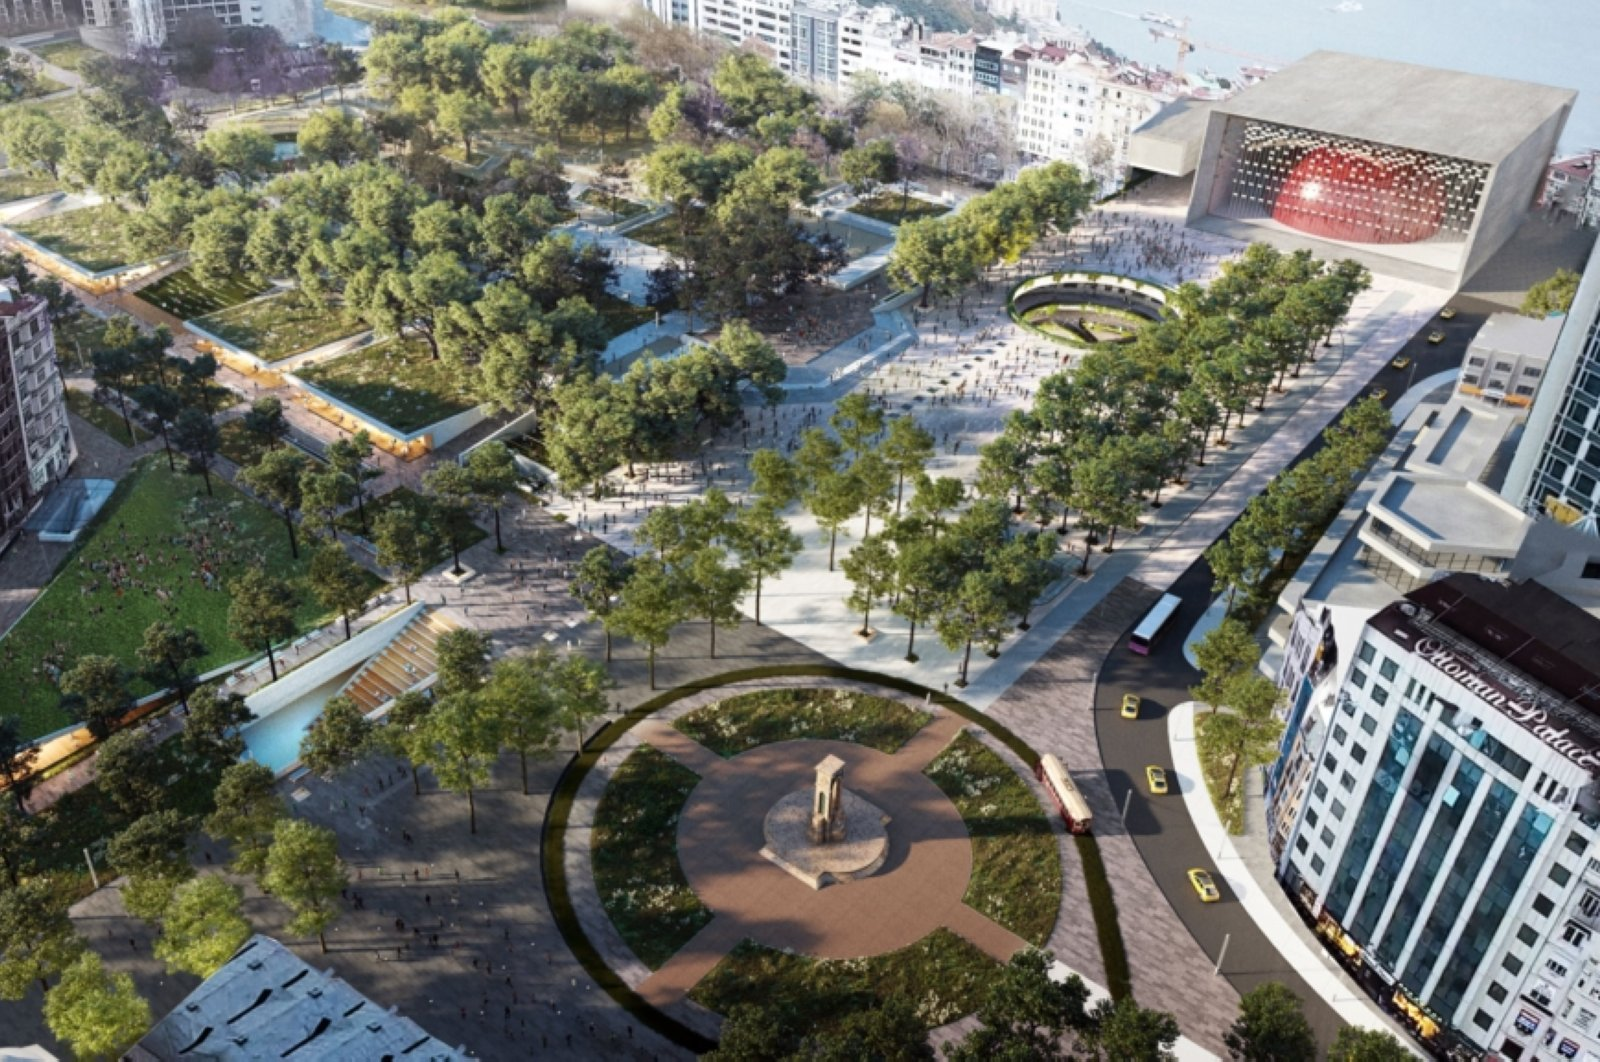 One of the designs put up for vote by the municipality for the Taksim Square, öne of main tourist attractions on Istanbul's European side. (COURTESY OF IBB)